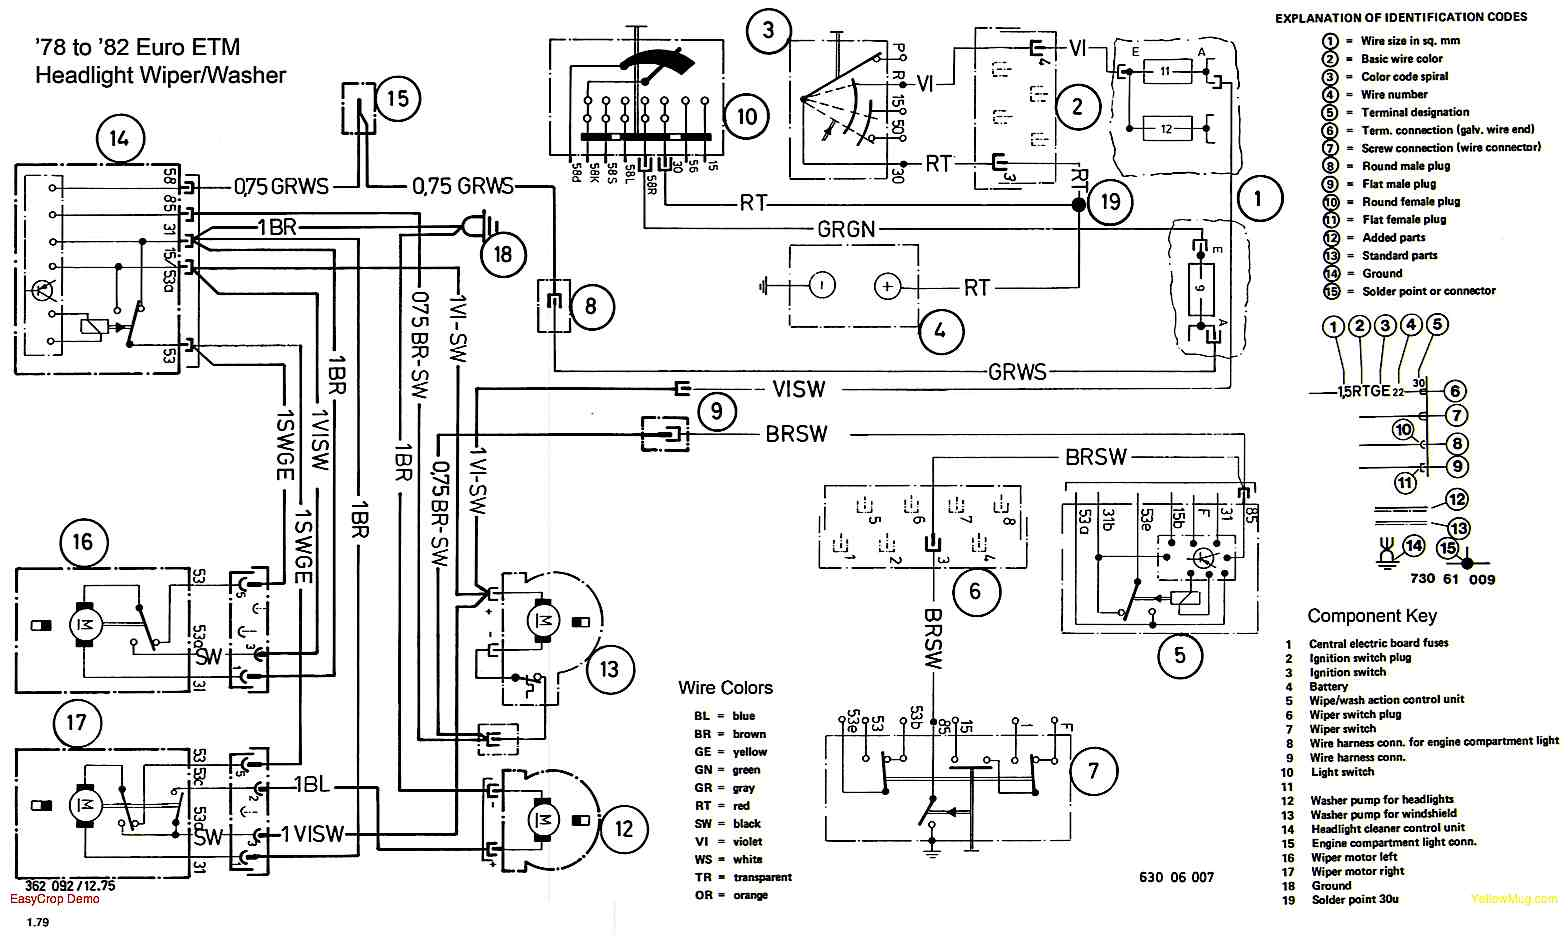 Marvelous Bmw E60 Towbar Wiring Diagram Wiring Diagram Data Schema Wiring 101 Orsalhahutechinfo